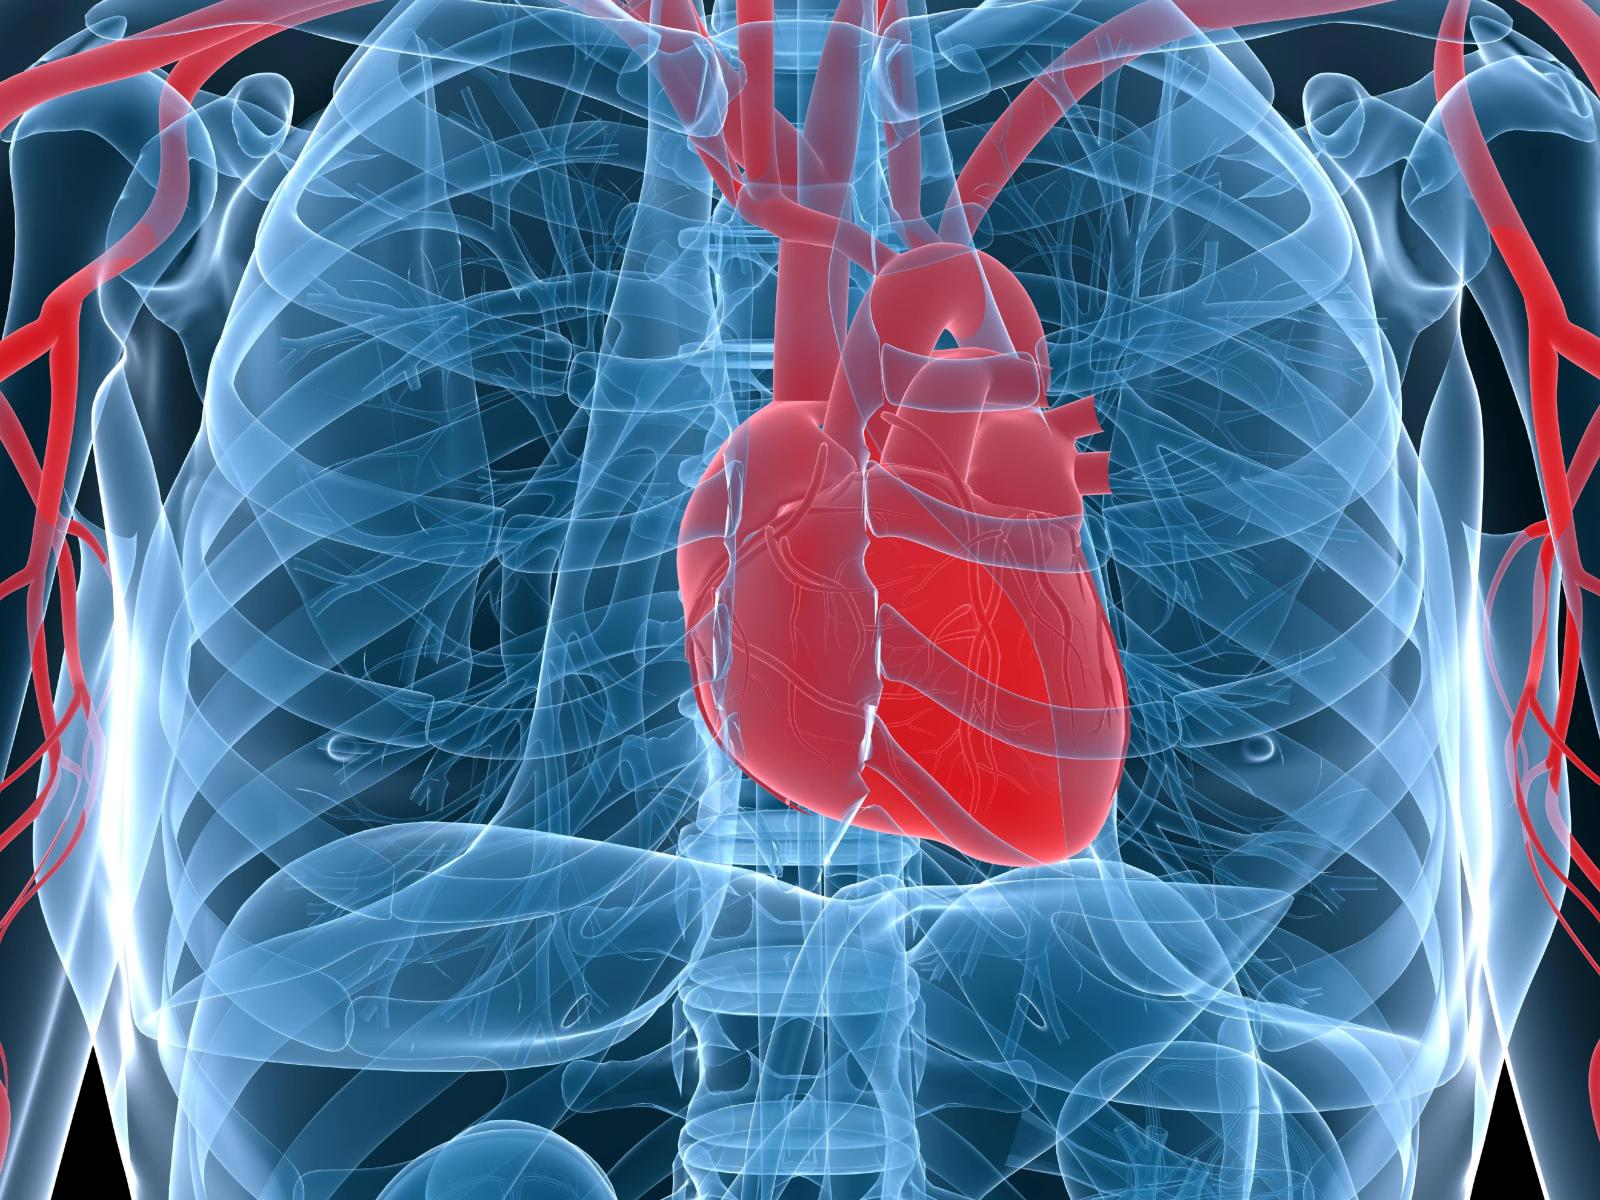 New Data Reveals Link Between Total AF Burden and Stroke Risk